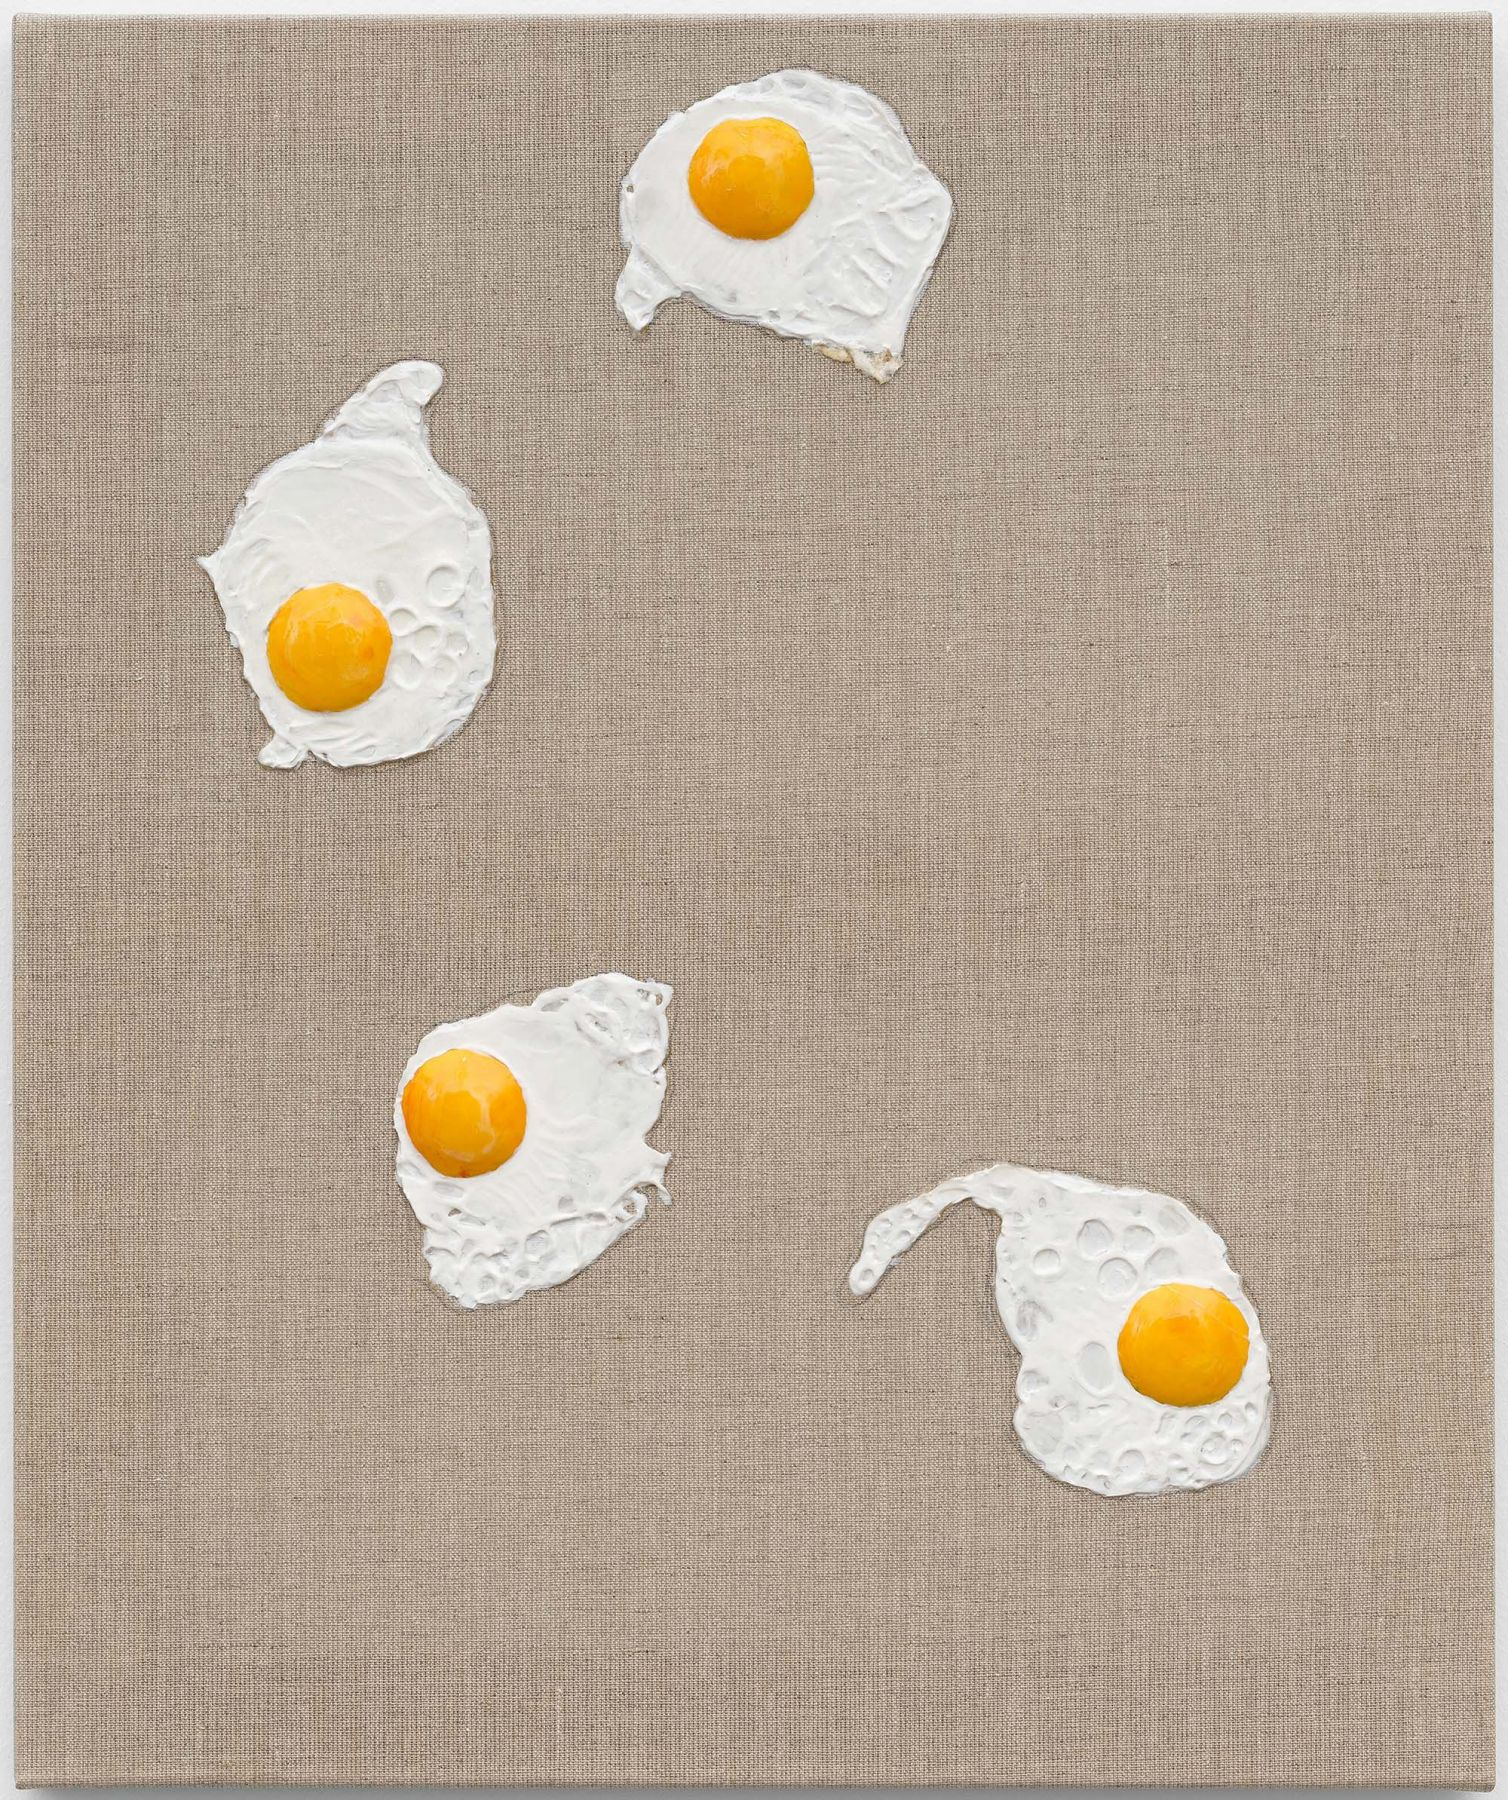 Untitled (eggs 11)